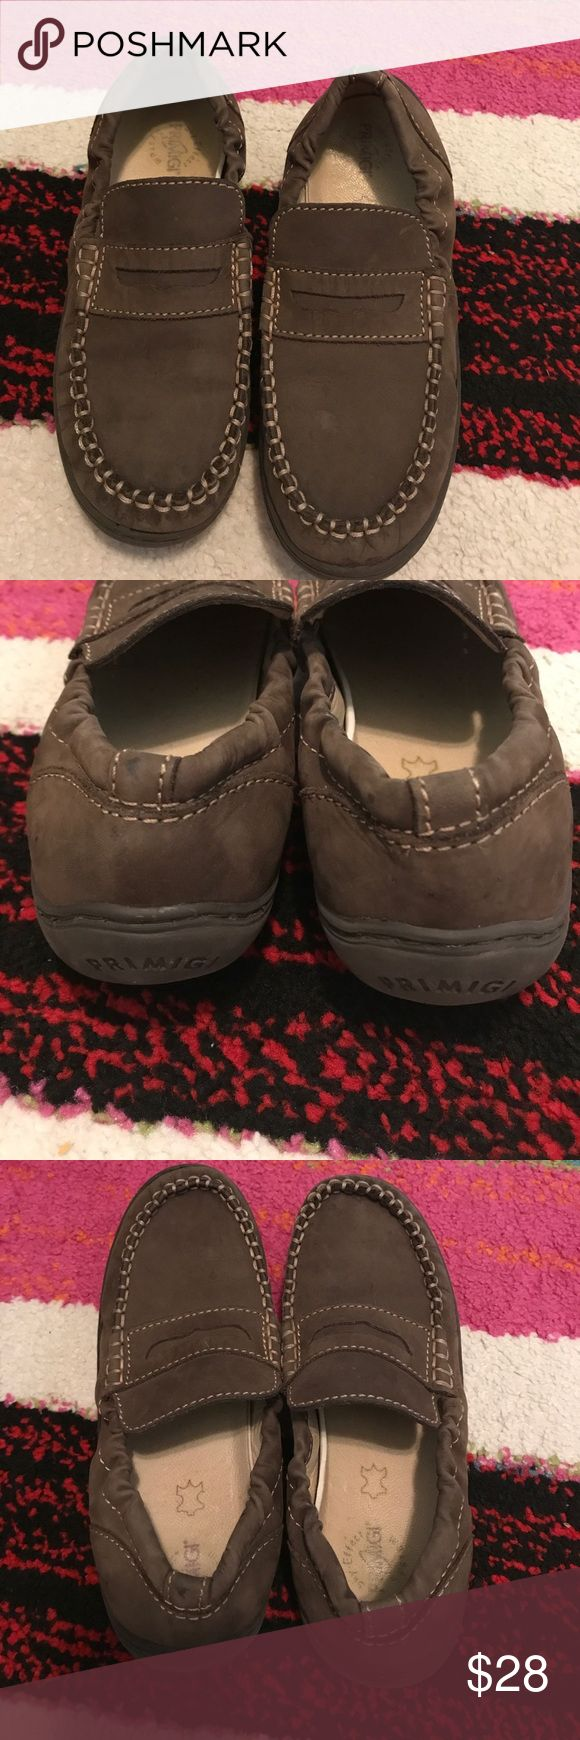 Primigi brown sky effect moccasin loafer size 33 Preowned condition. Fashionable and comfortable boys size 33 Primigi Shoes Moccasins